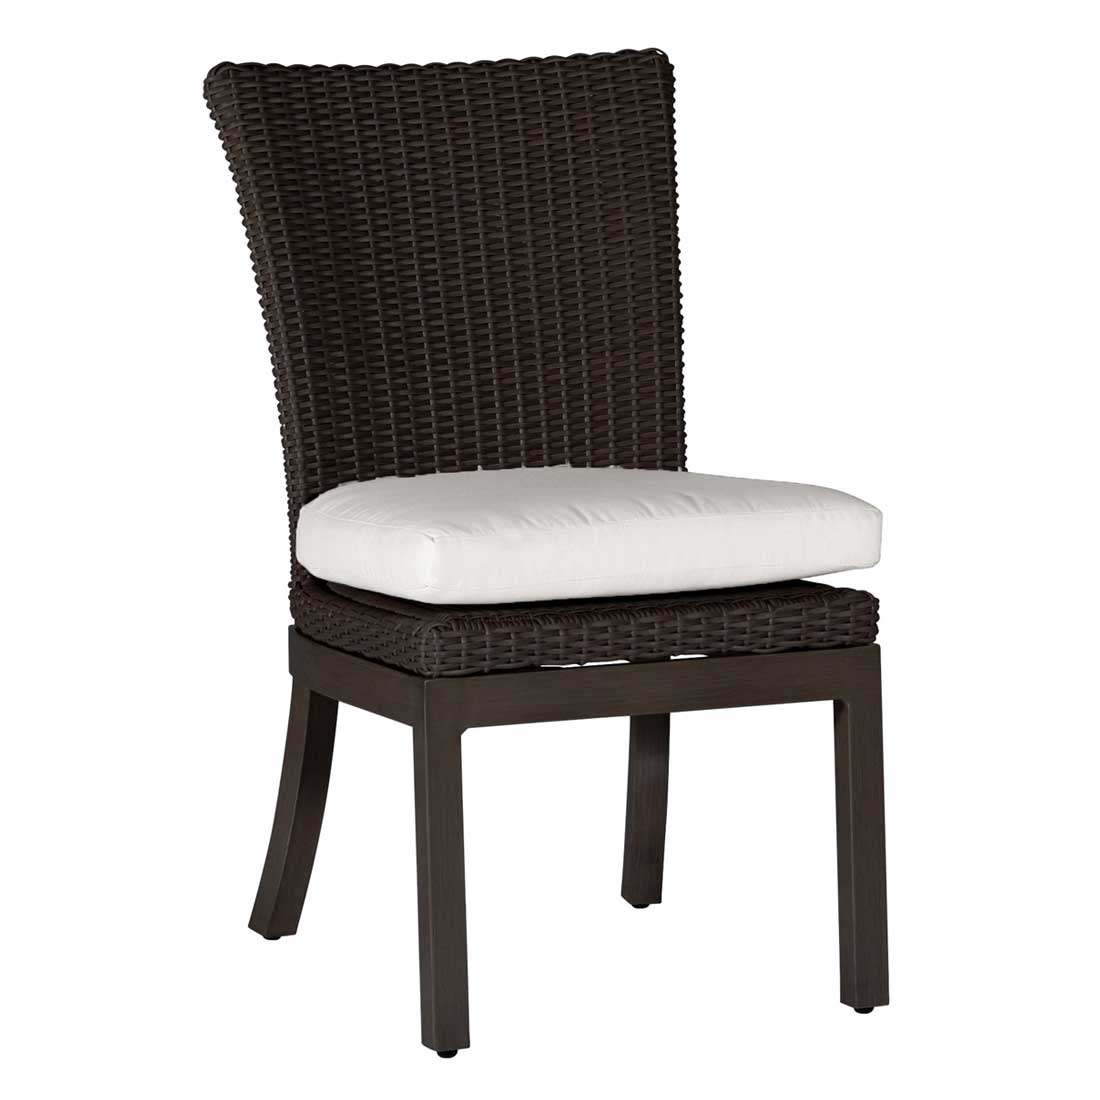 rustic side chair – rustic outdoor chair